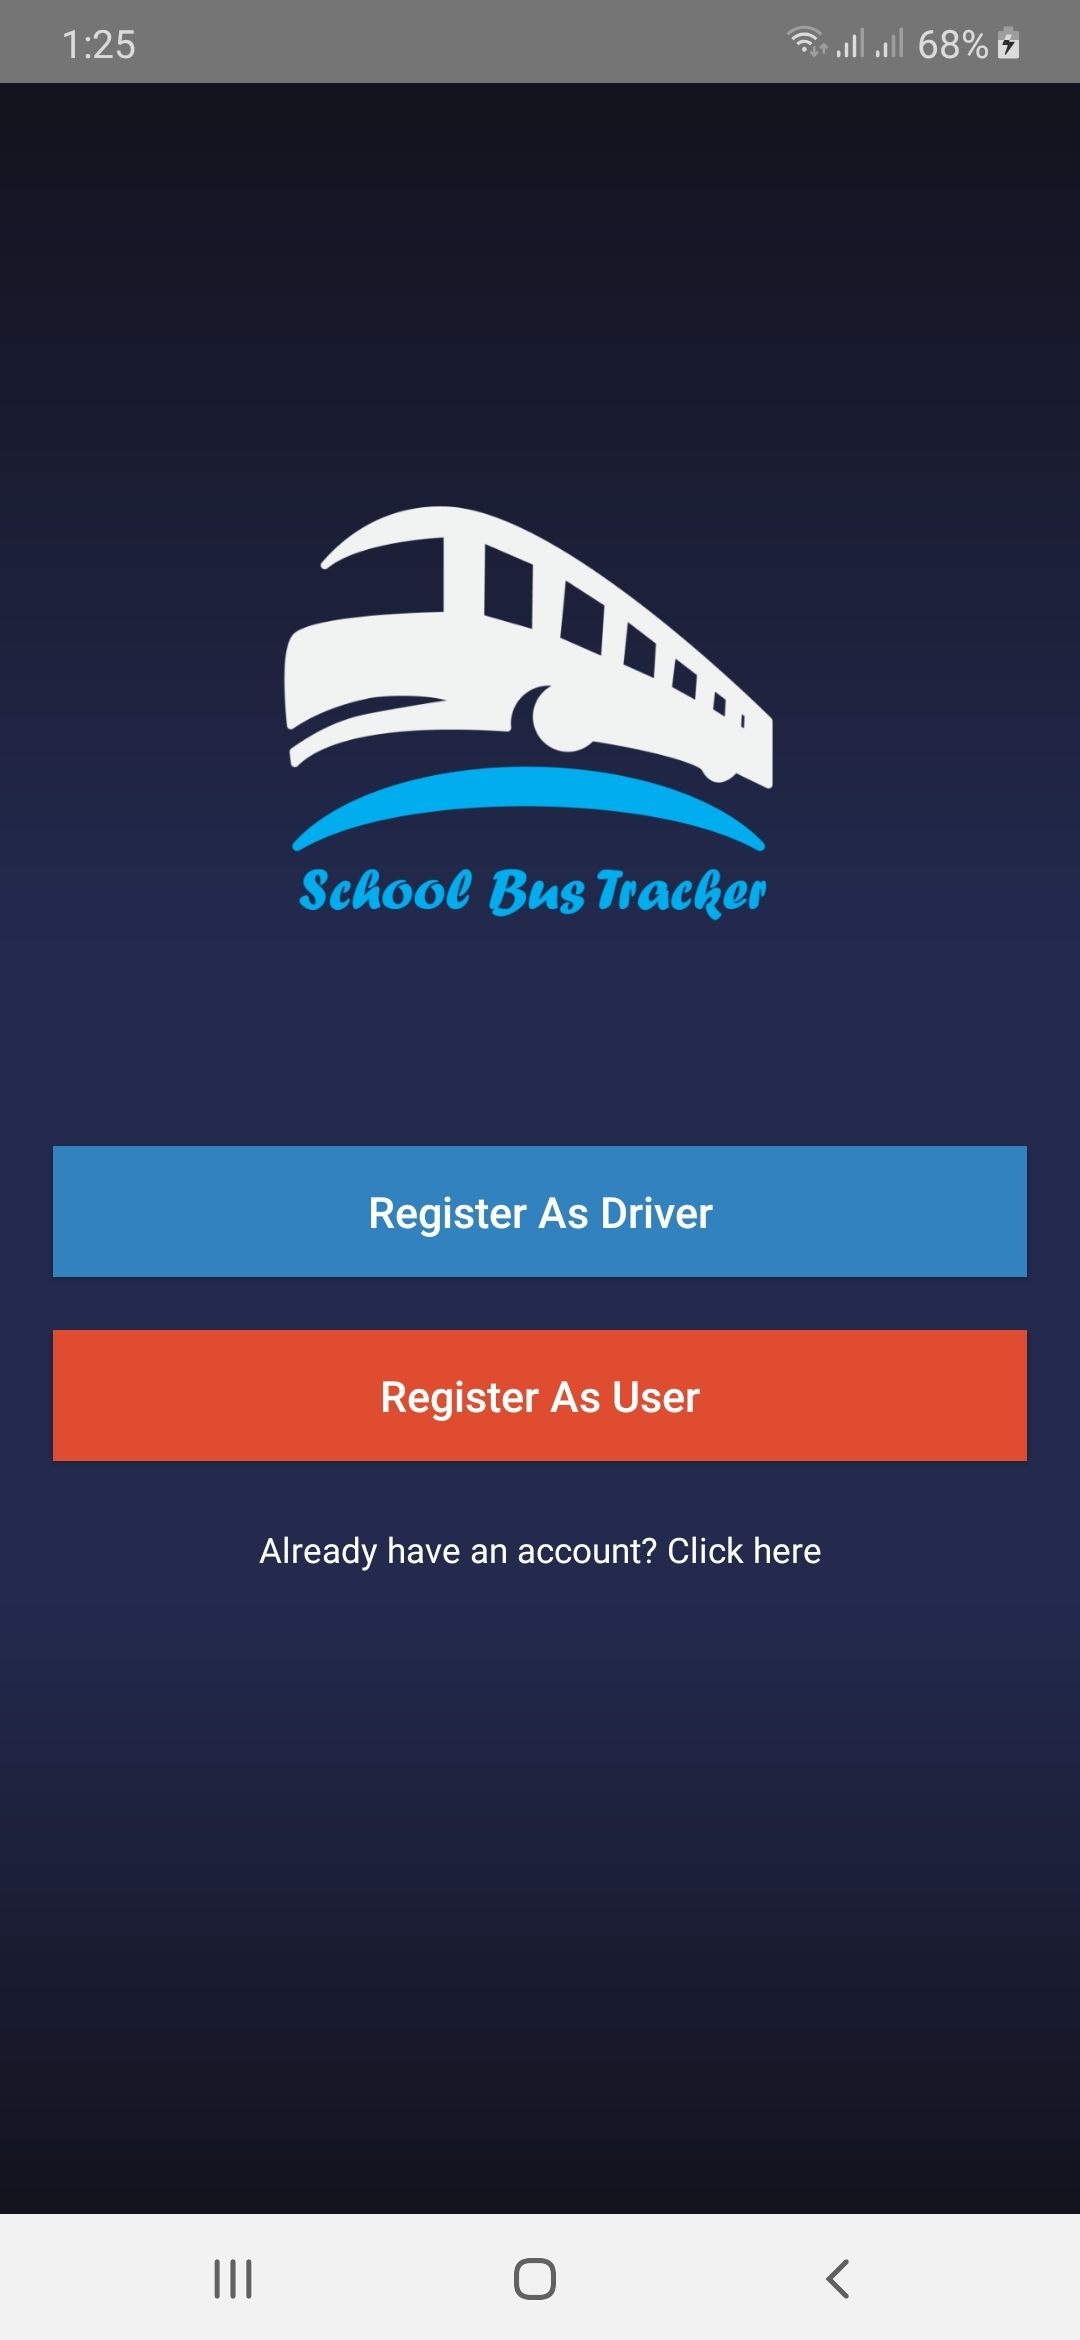 School Bus Tracker Android Source Code Screenshot 3